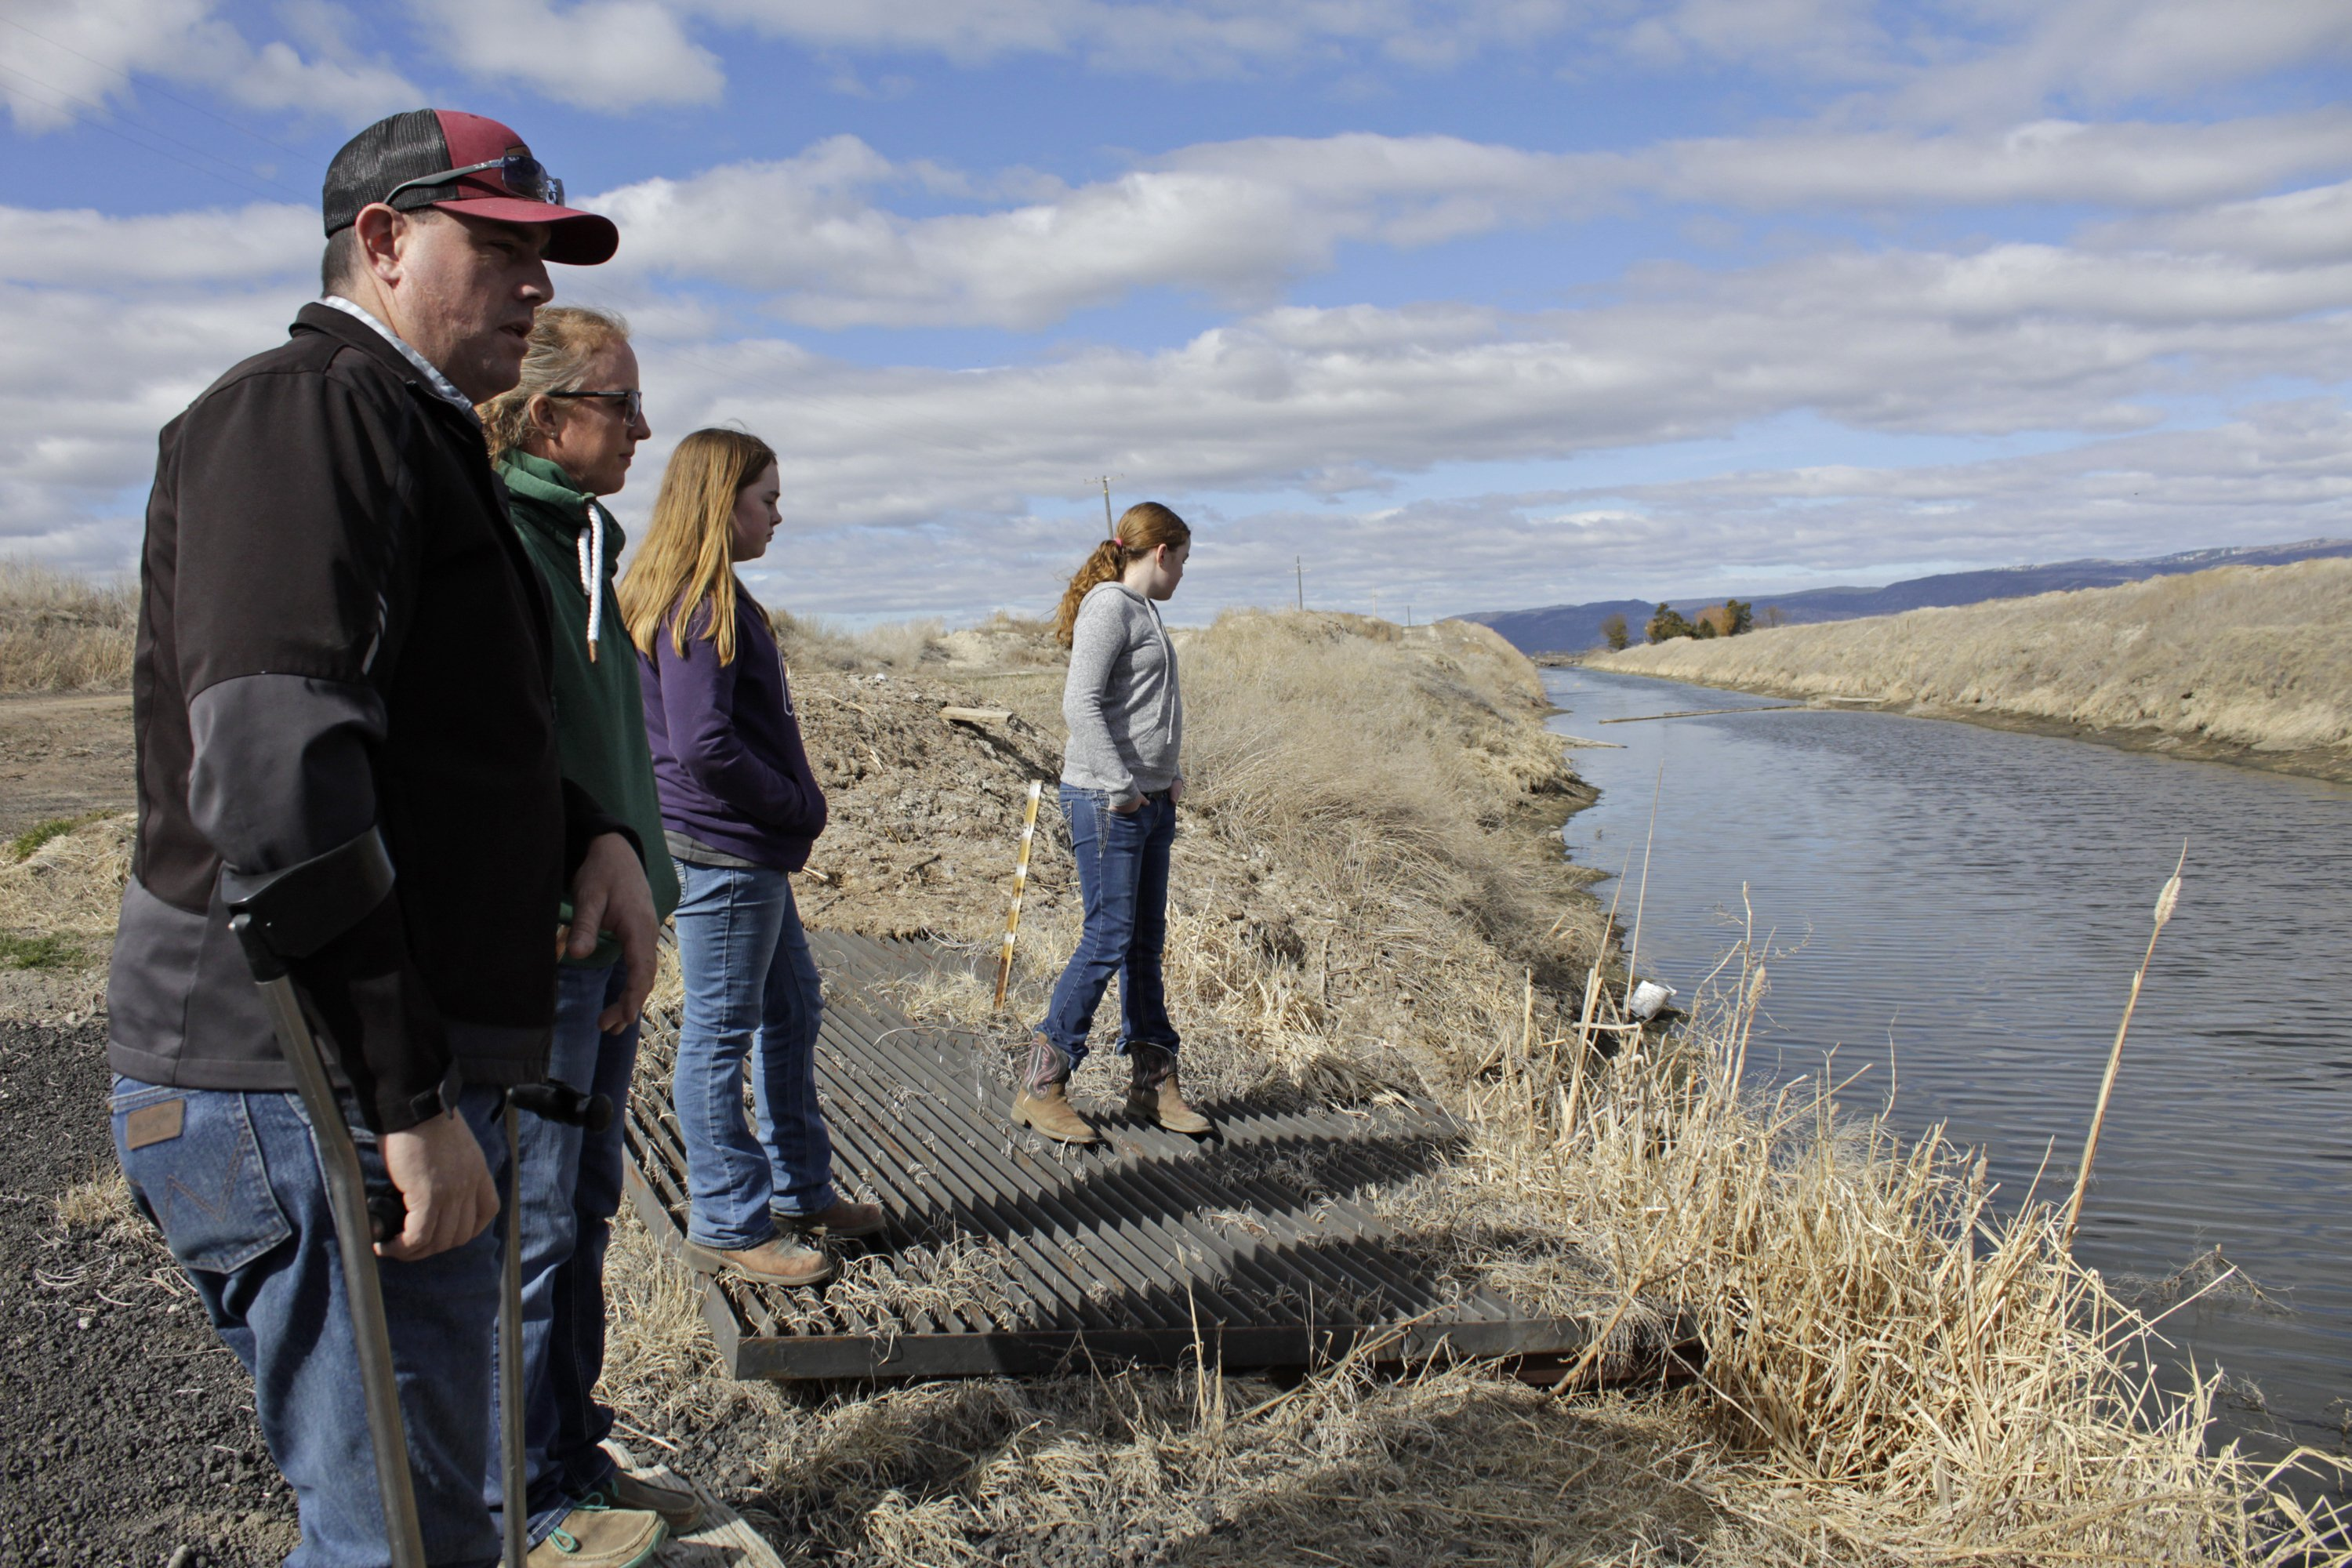 An epic drought means a water crisis at the Oregon-California border